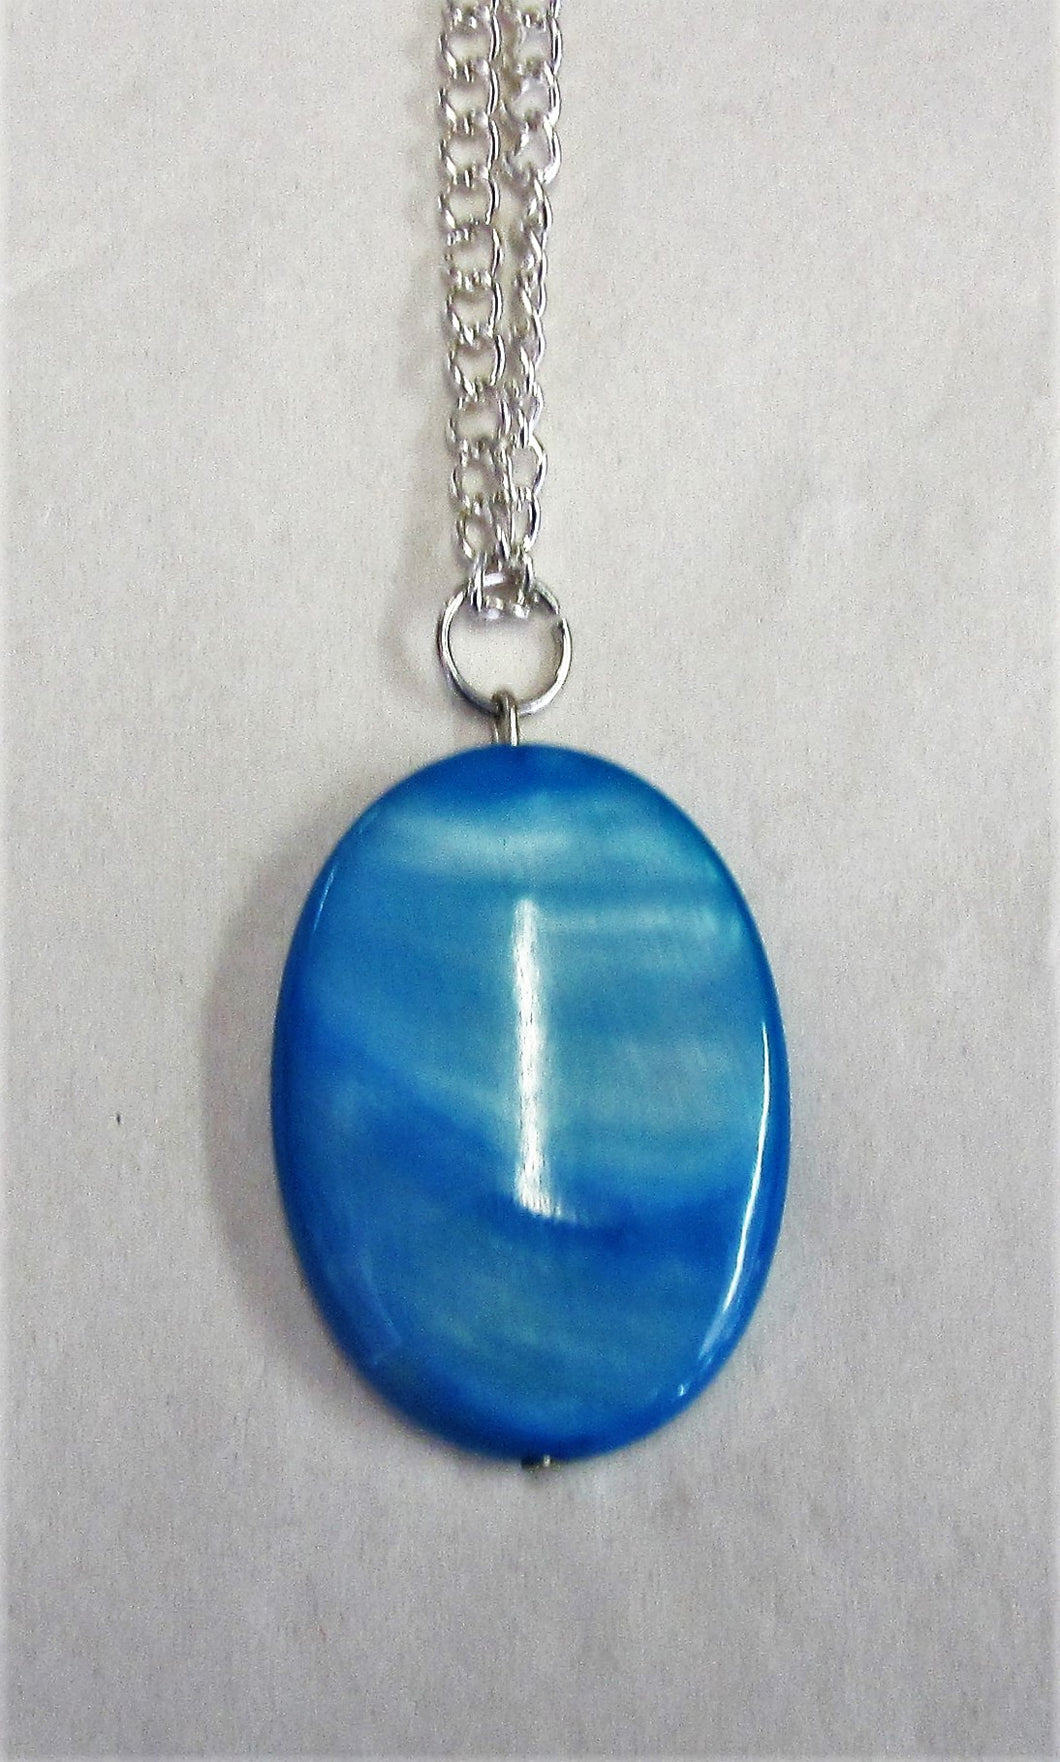 Blue pendent on sterling silver necklace